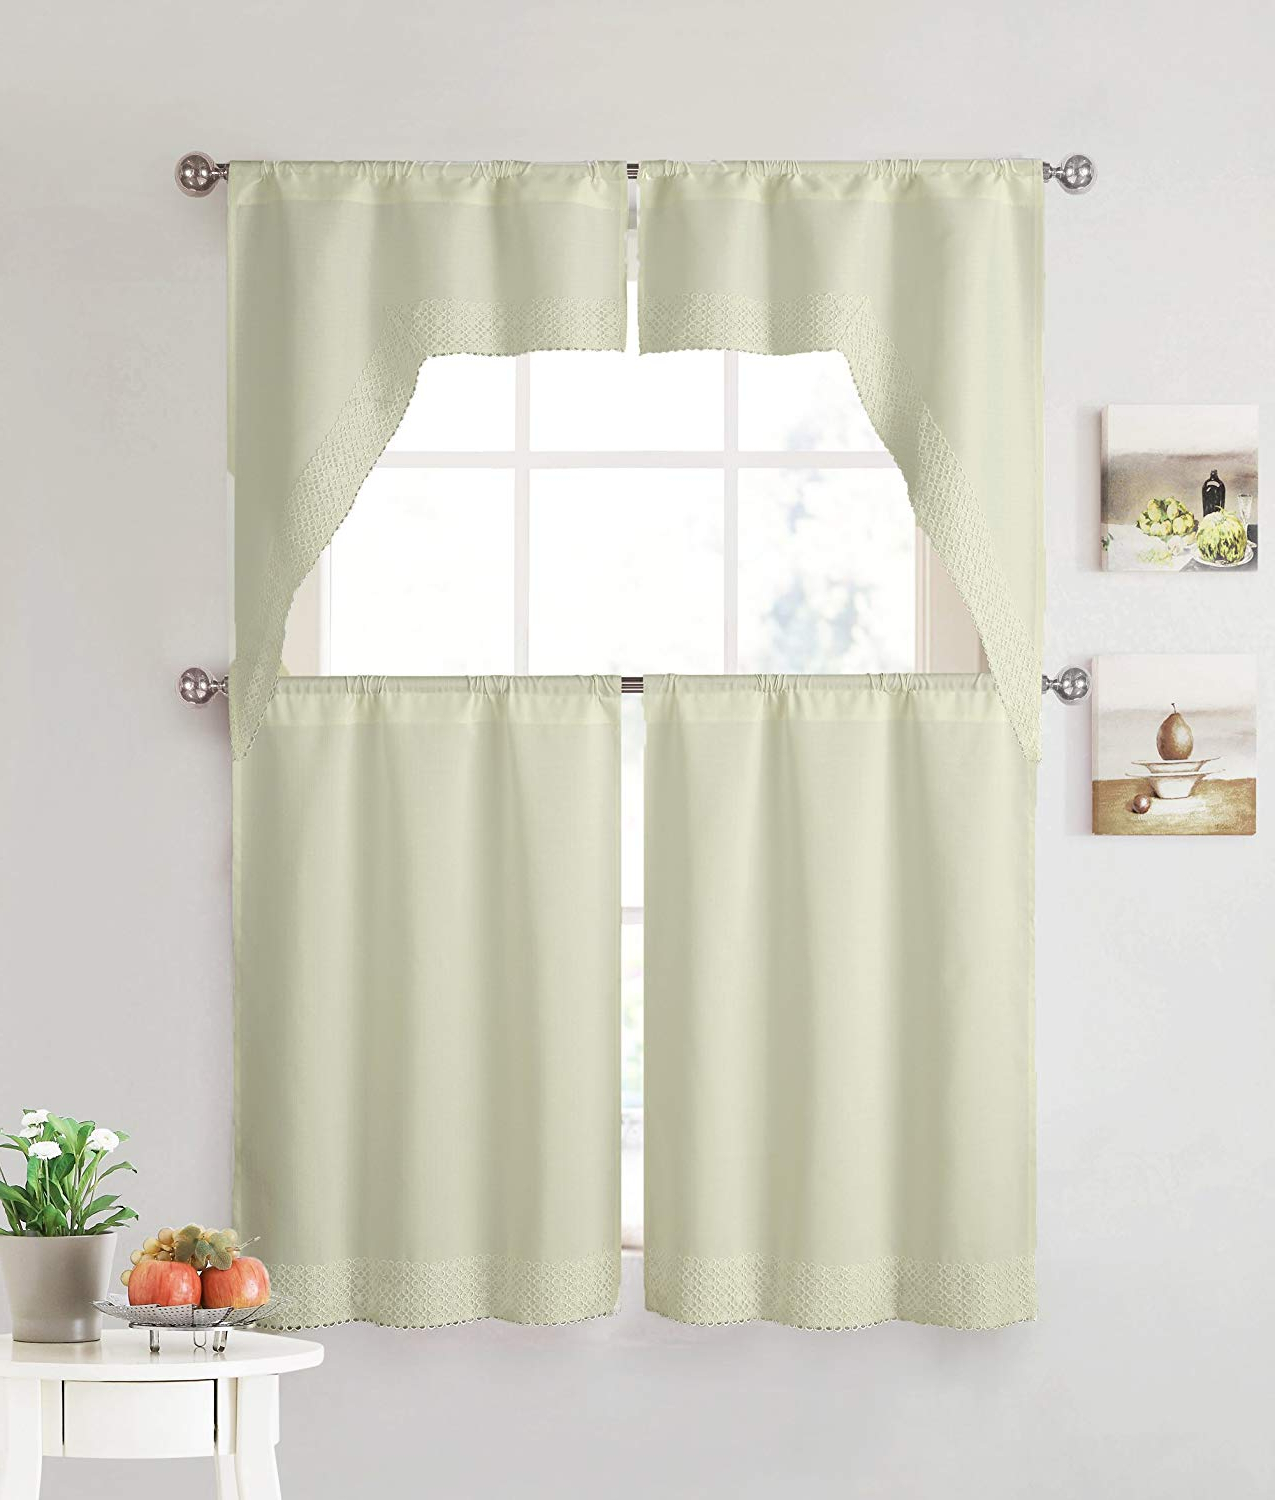 Trendy Beige 4 Piece Kitchen Window Curtain Set: Lace Border, 2 Swag And 2 Tier Panels (beige) Throughout Cotton Lace 5 Piece Window Tier And Swag Sets (View 8 of 20)